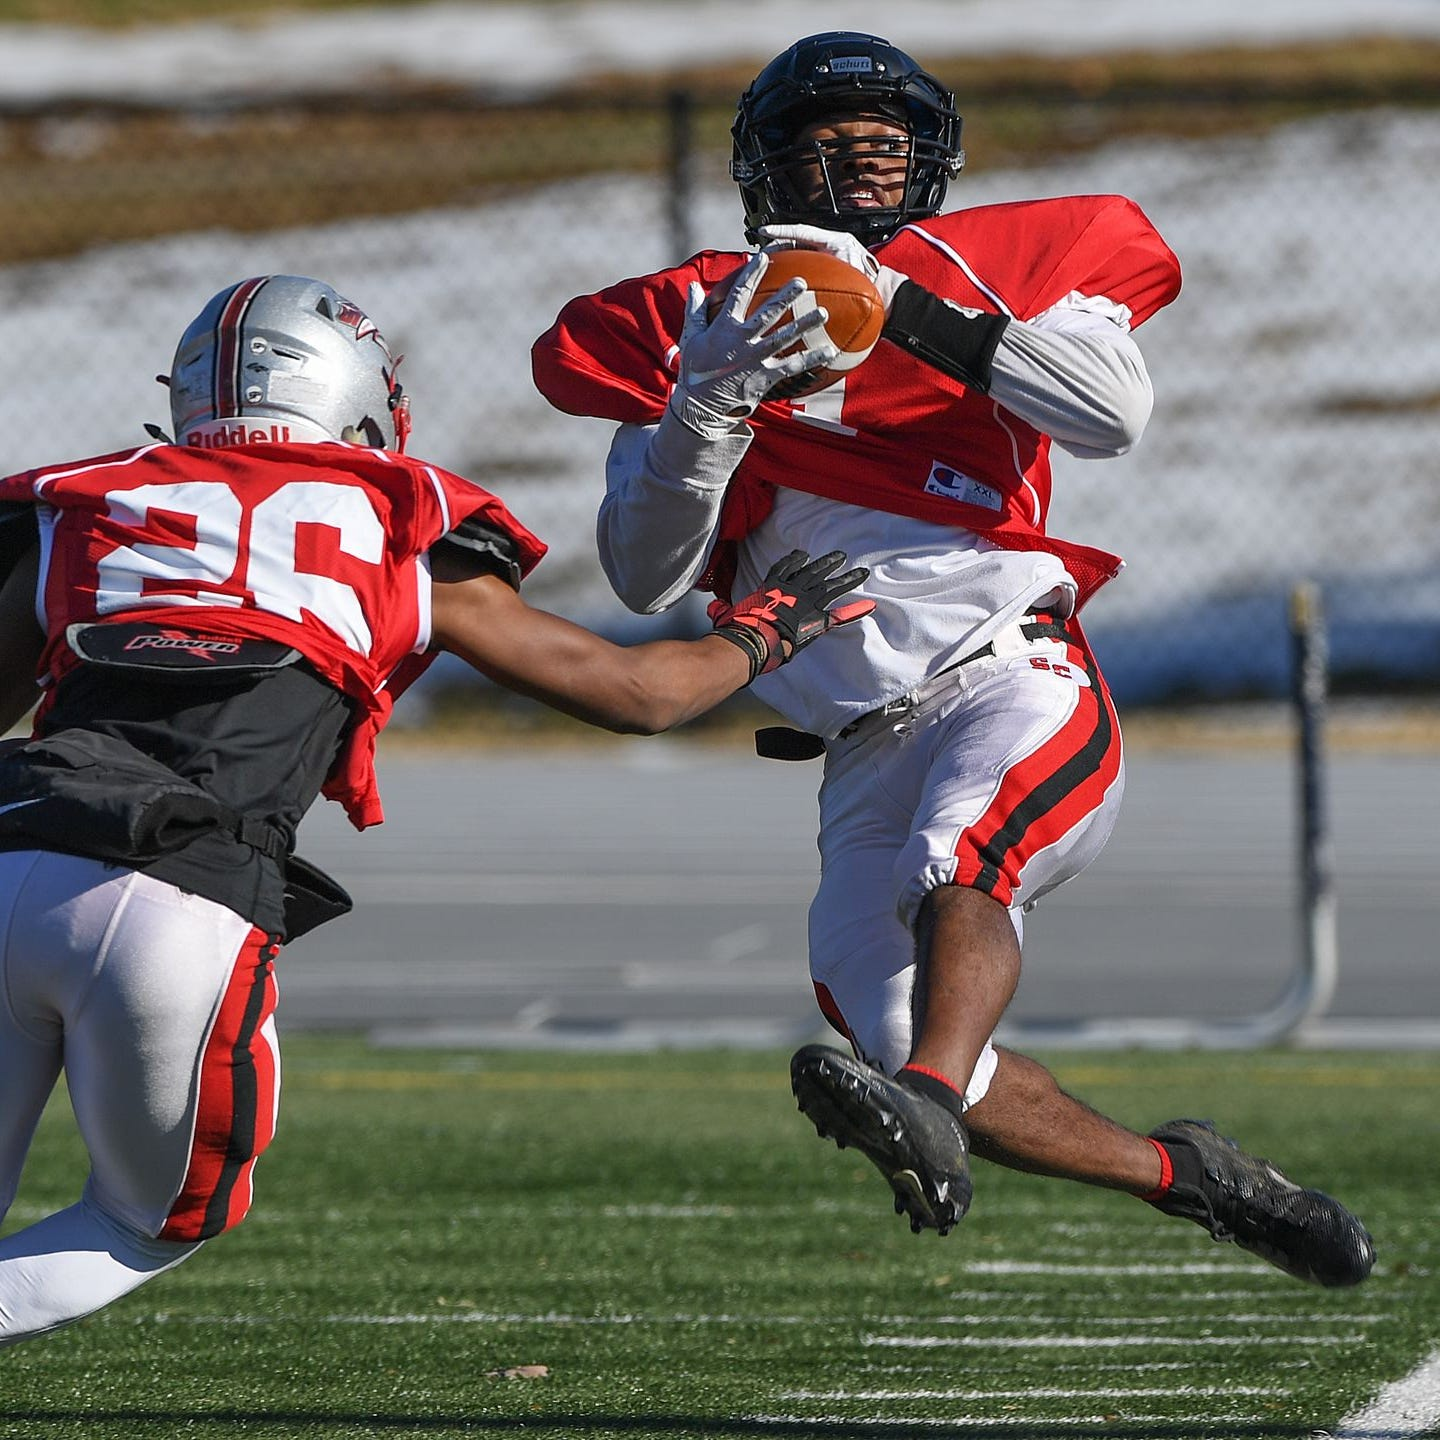 Hillcrest wide receiver Quendarius Jefferson (81) makes a reception past South Pointe defensive back Jaylen Mahoney (26) during South Carolina's Shrine Bowl practice Tuesday.